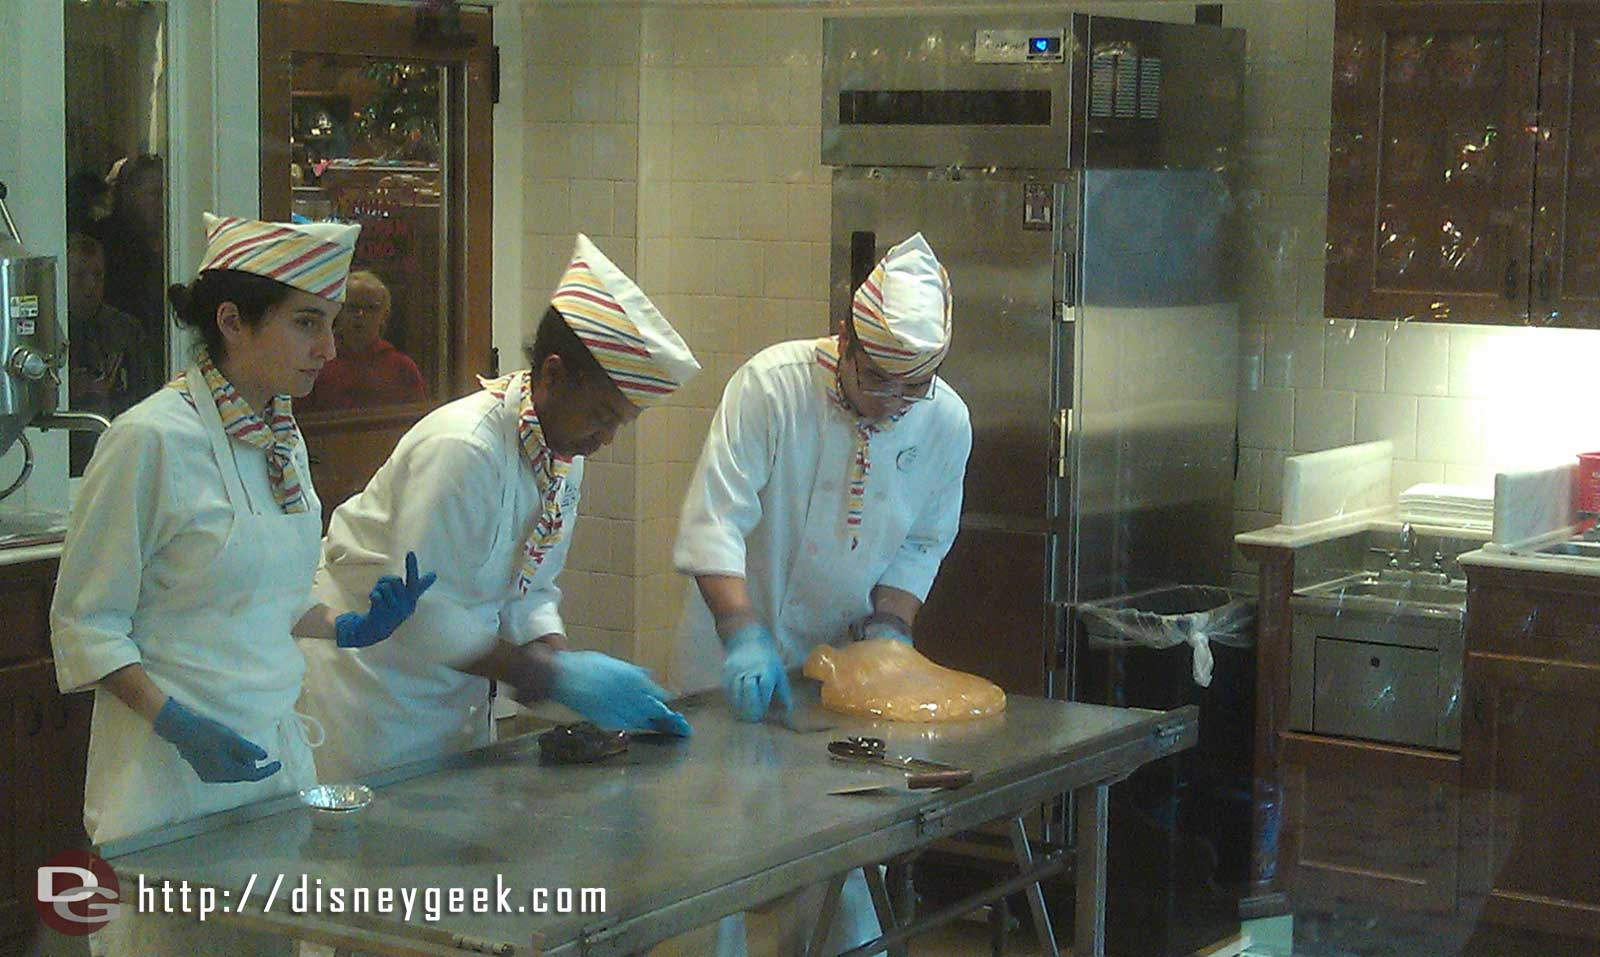 Candy Canes being made on #BuenaVistaStreet today.